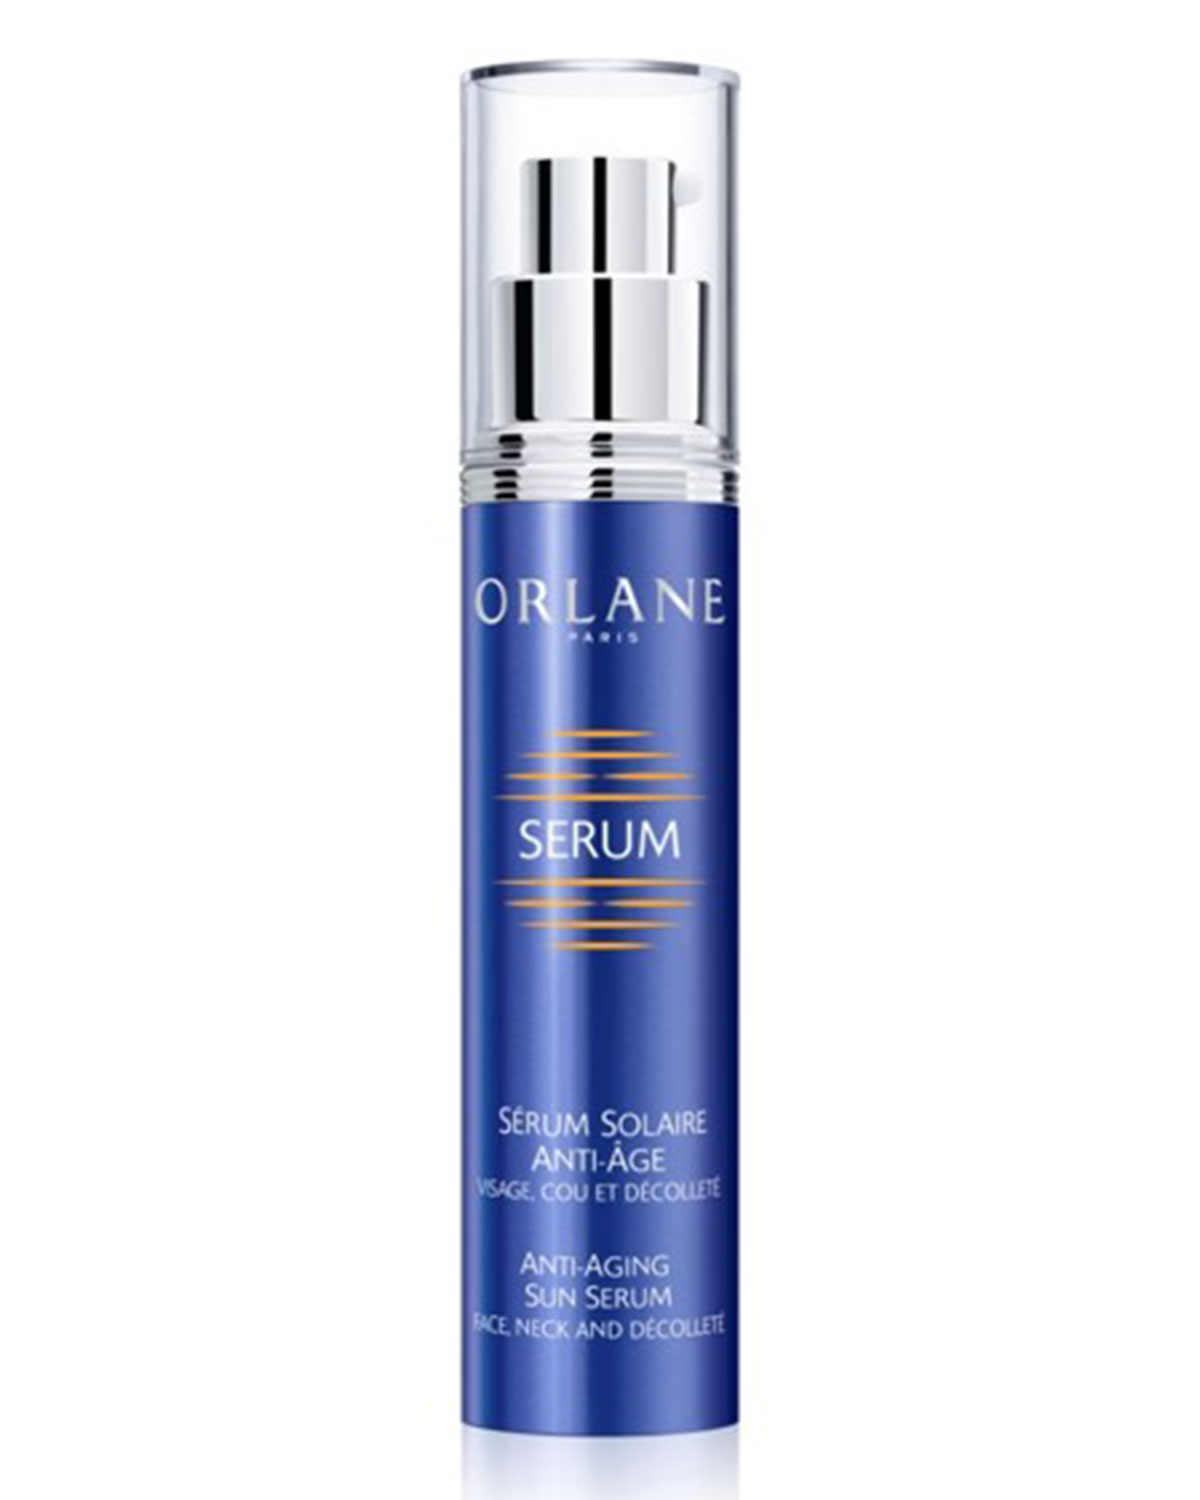 Orlane ANTI-AGING SUN SERUM FACE NECK AND DECOLLETE, 1.5 OZ./ 50 ML